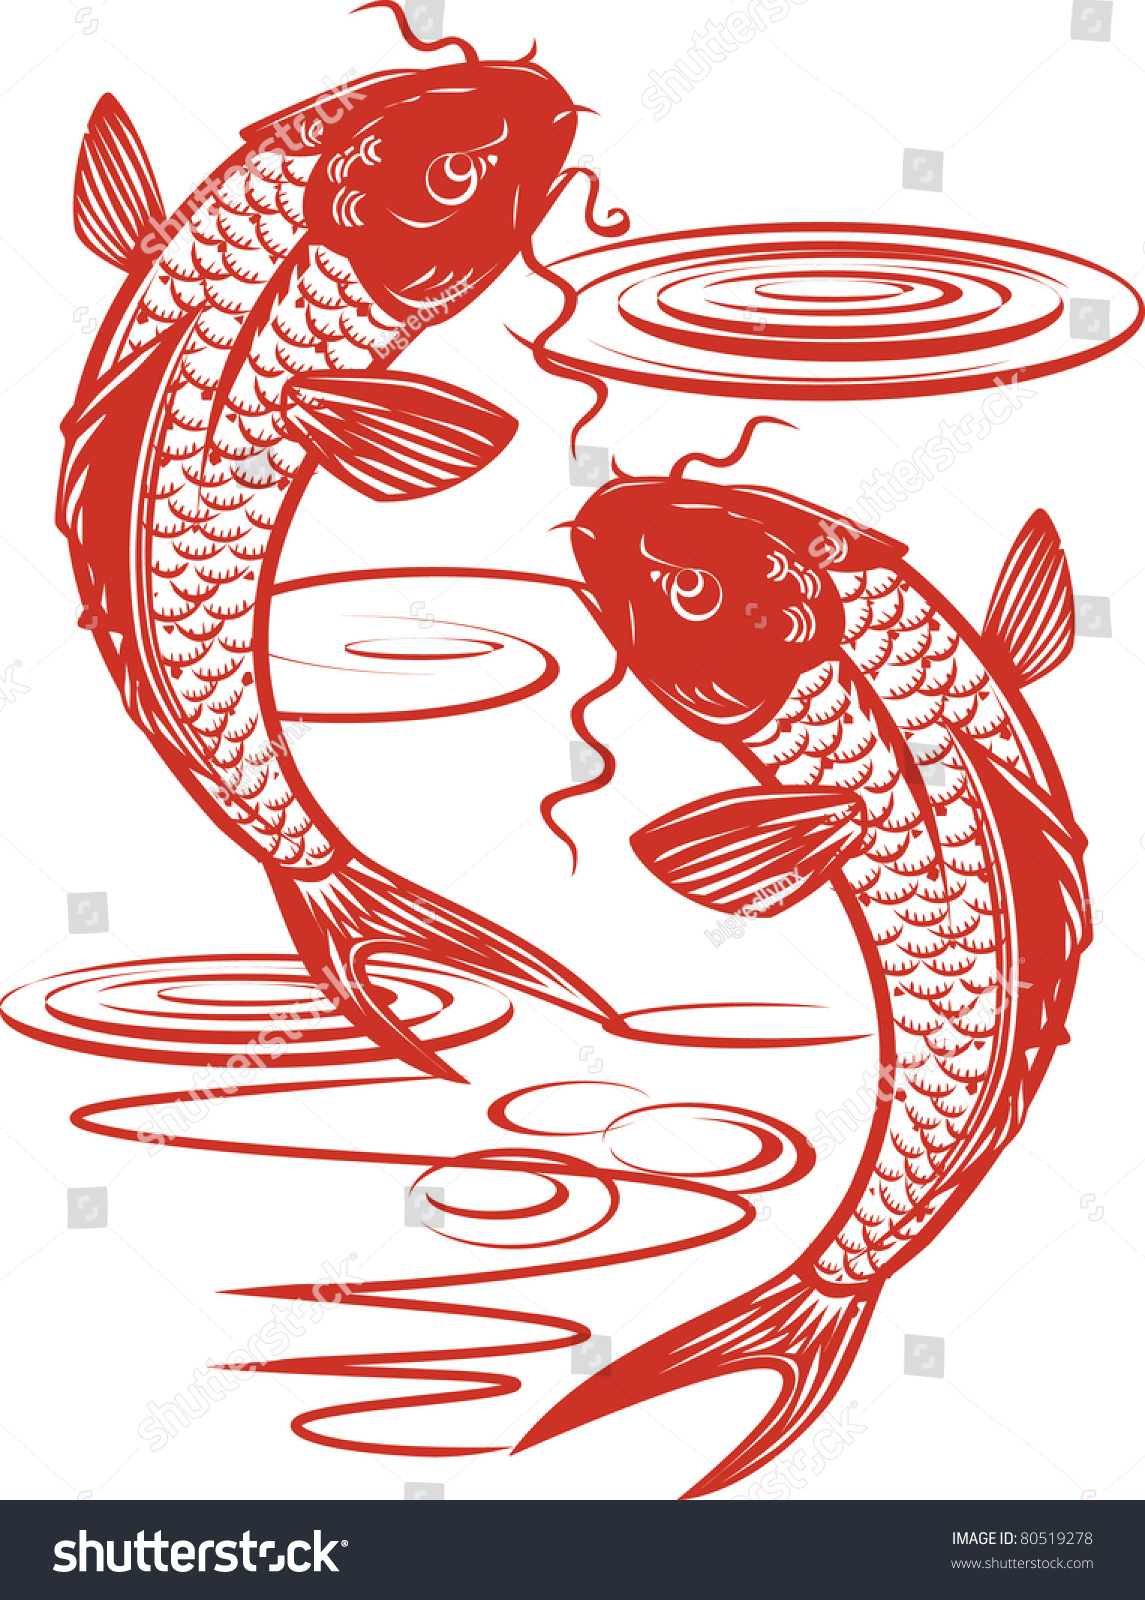 Twin koi fish stock vector illustration 80519278 for Koi fish vector